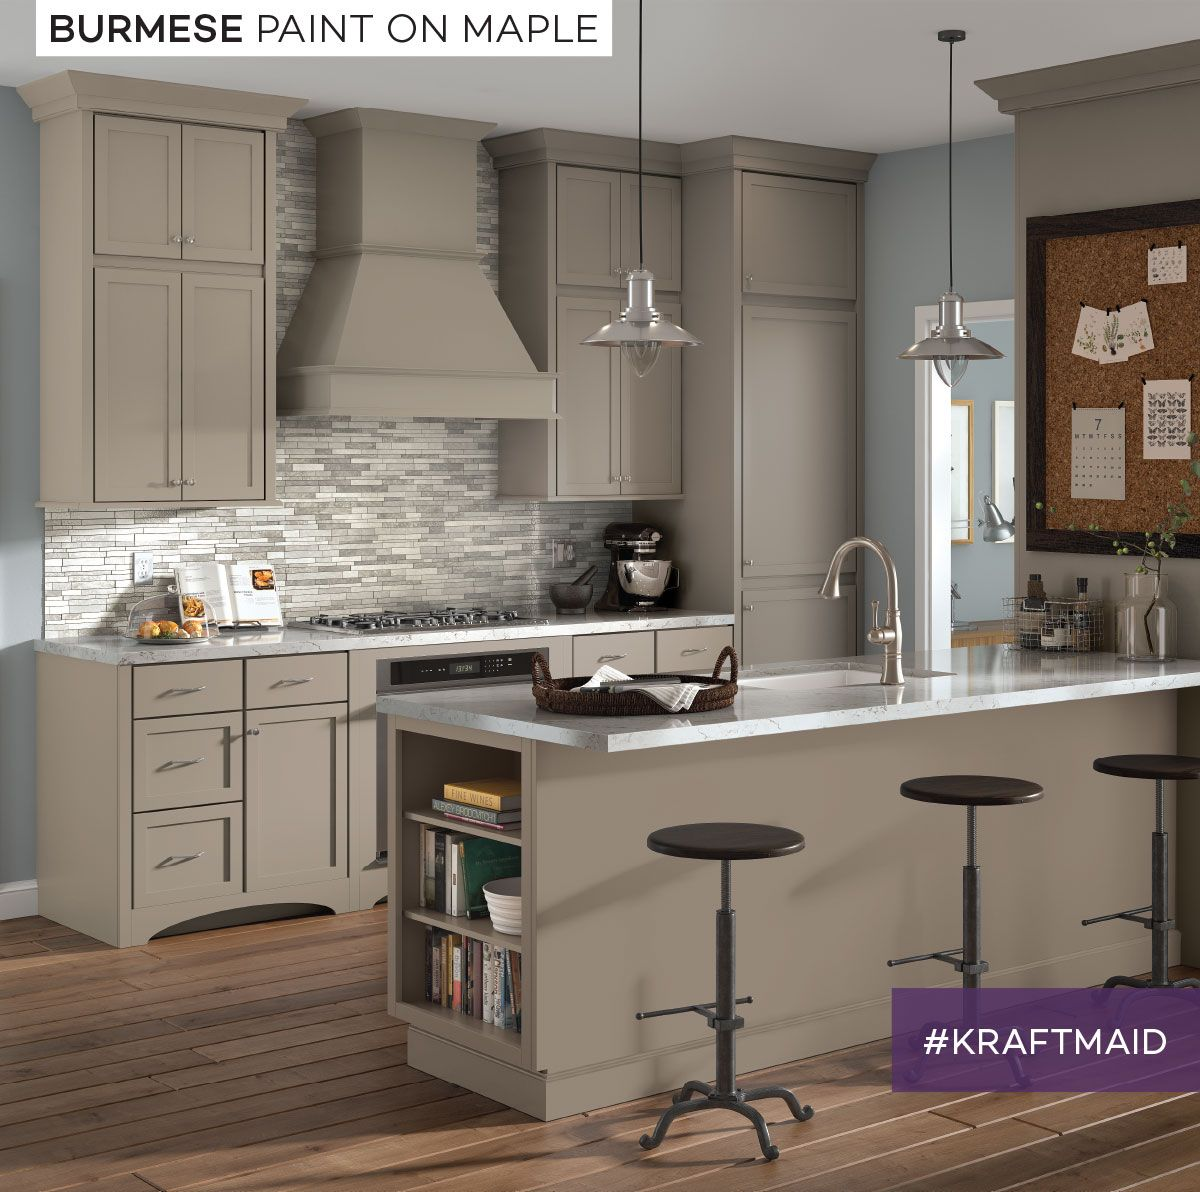 Kraftmaid S Burmese Paint Is A Warm